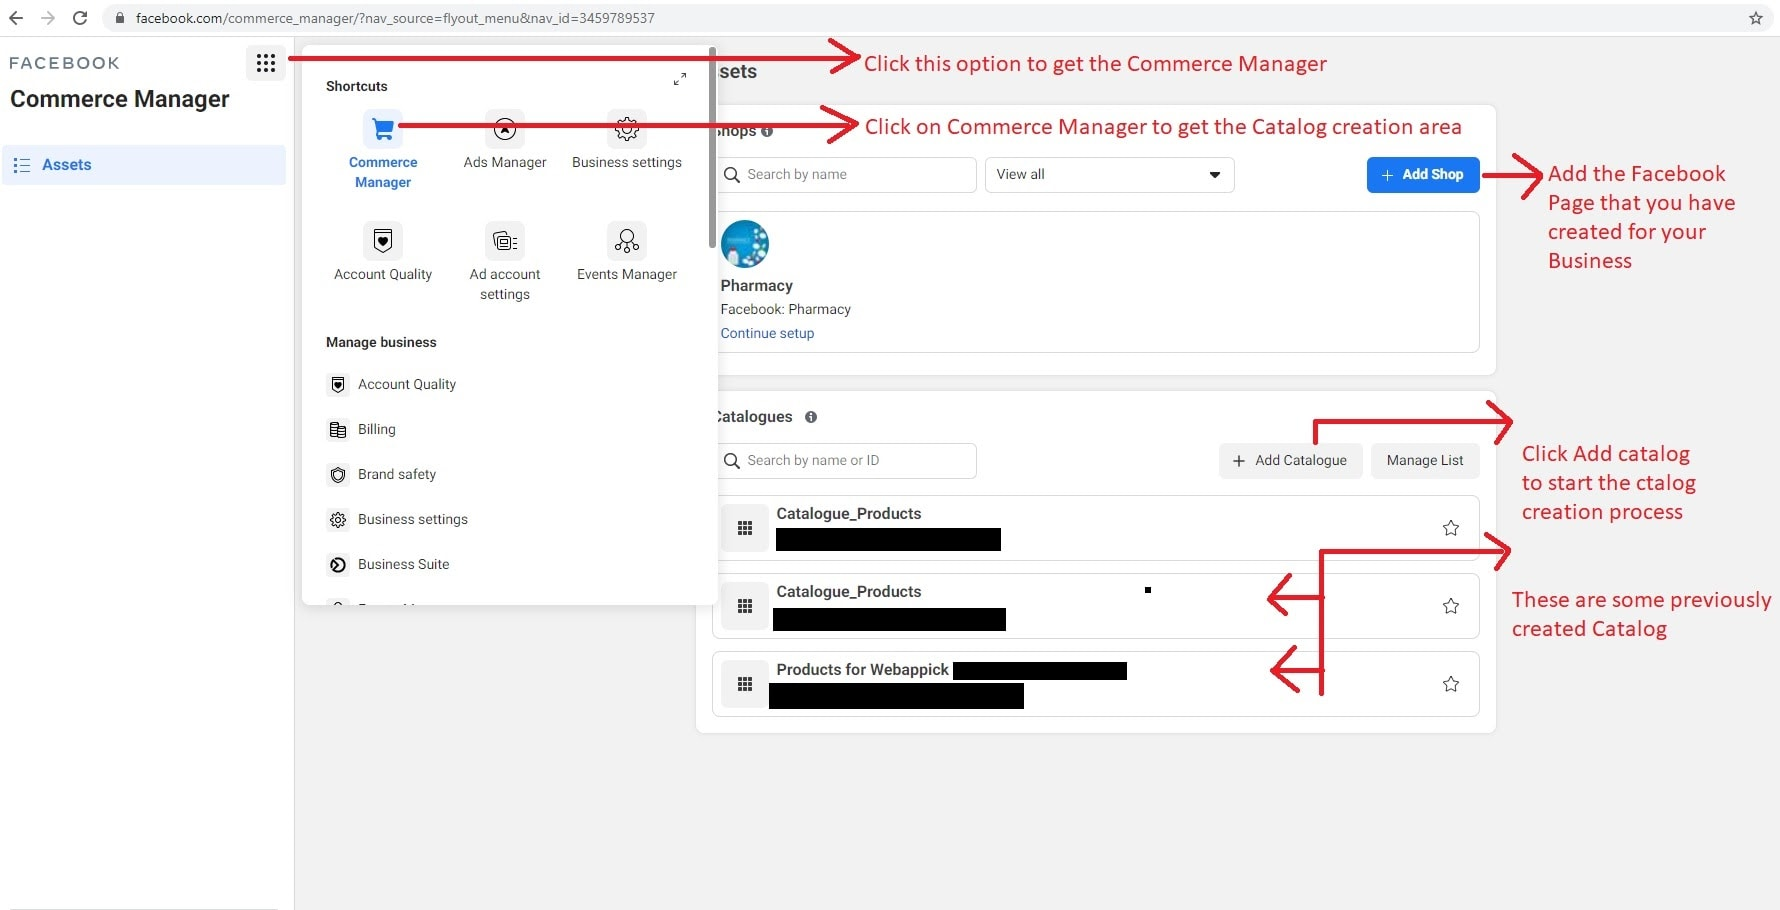 Shops and Catalogues for Facebook Commerce Manager